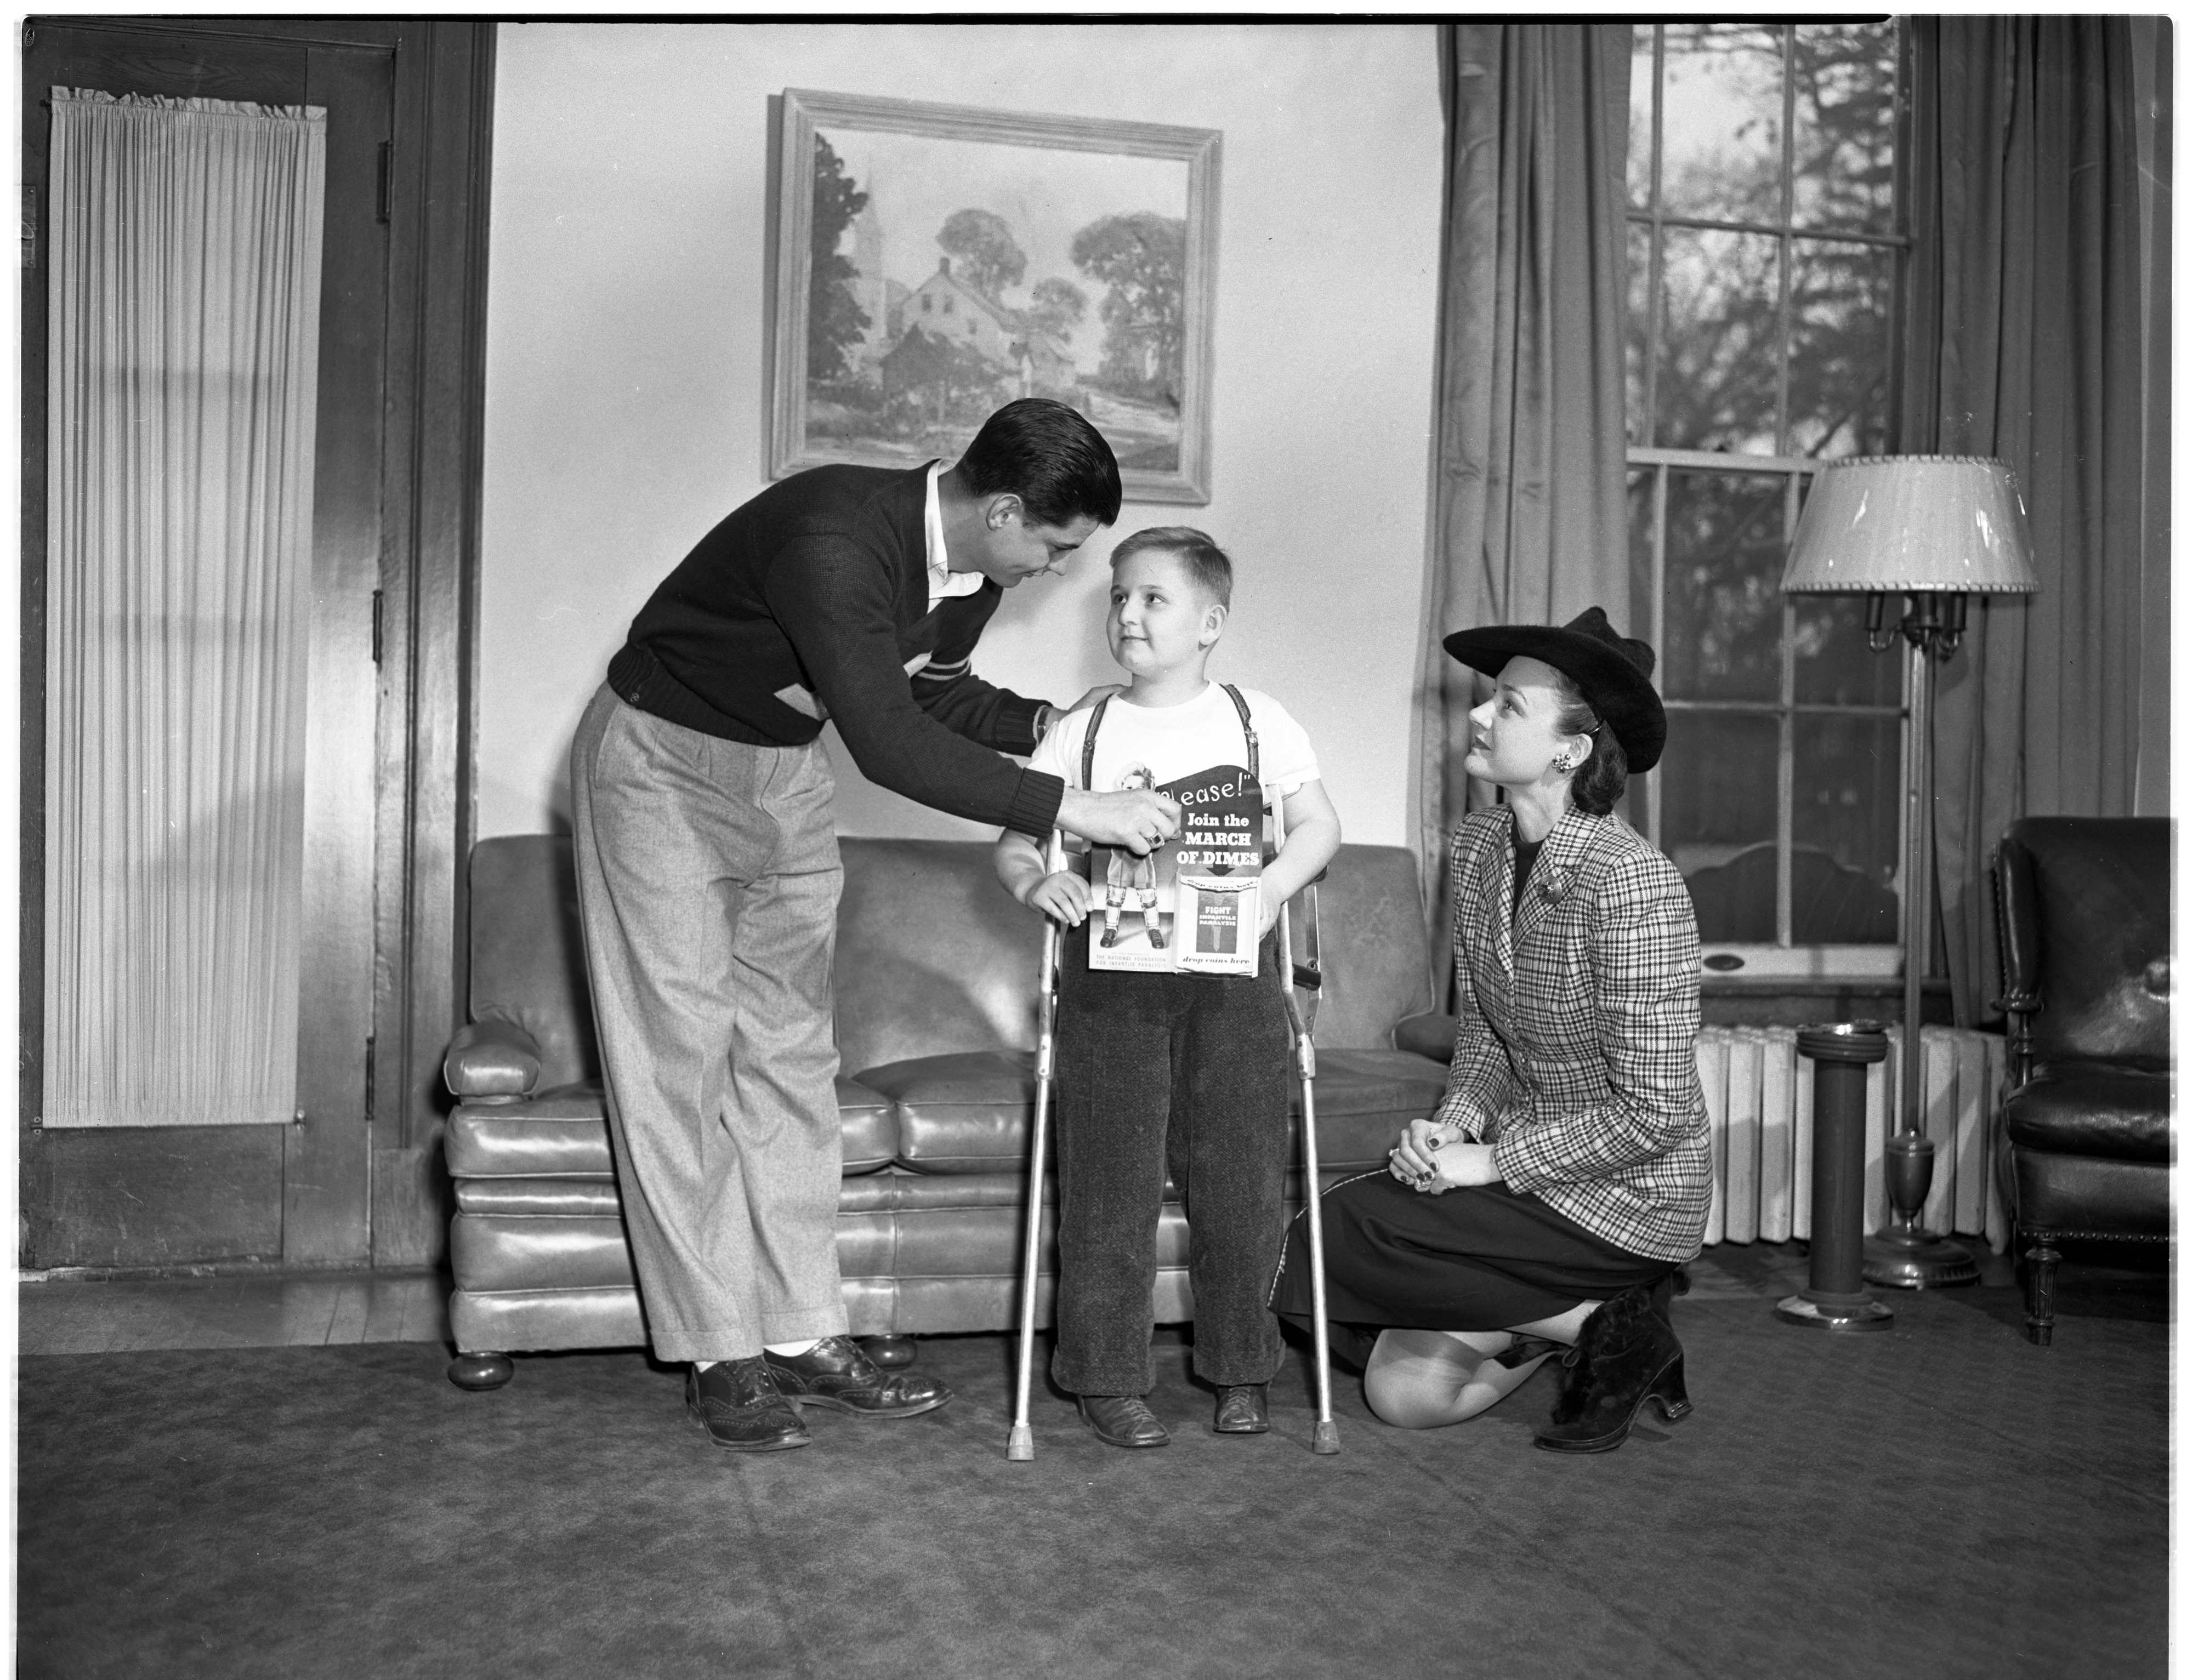 University of Michigan All-American and Rose Bowl Star Bob Chappuis Contributes To March of Dimes Campaign, January 1948 image